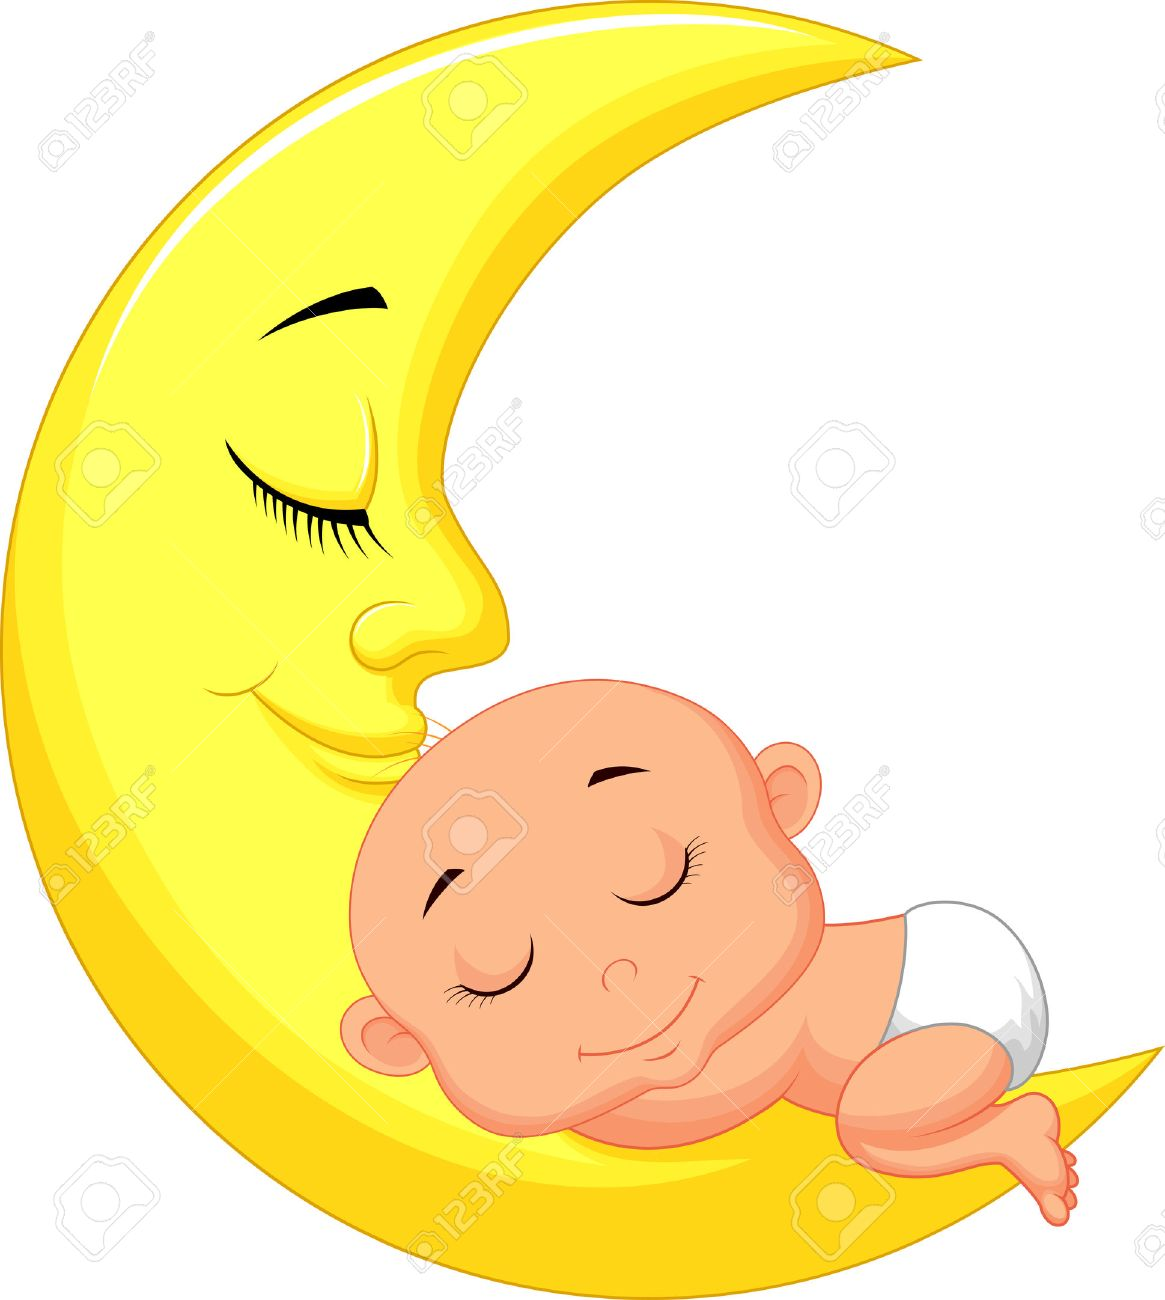 Cute baby cartoon sleeping on the moon royalty free cliparts cute baby cartoon sleeping on the moon stock vector 24336466 voltagebd Image collections